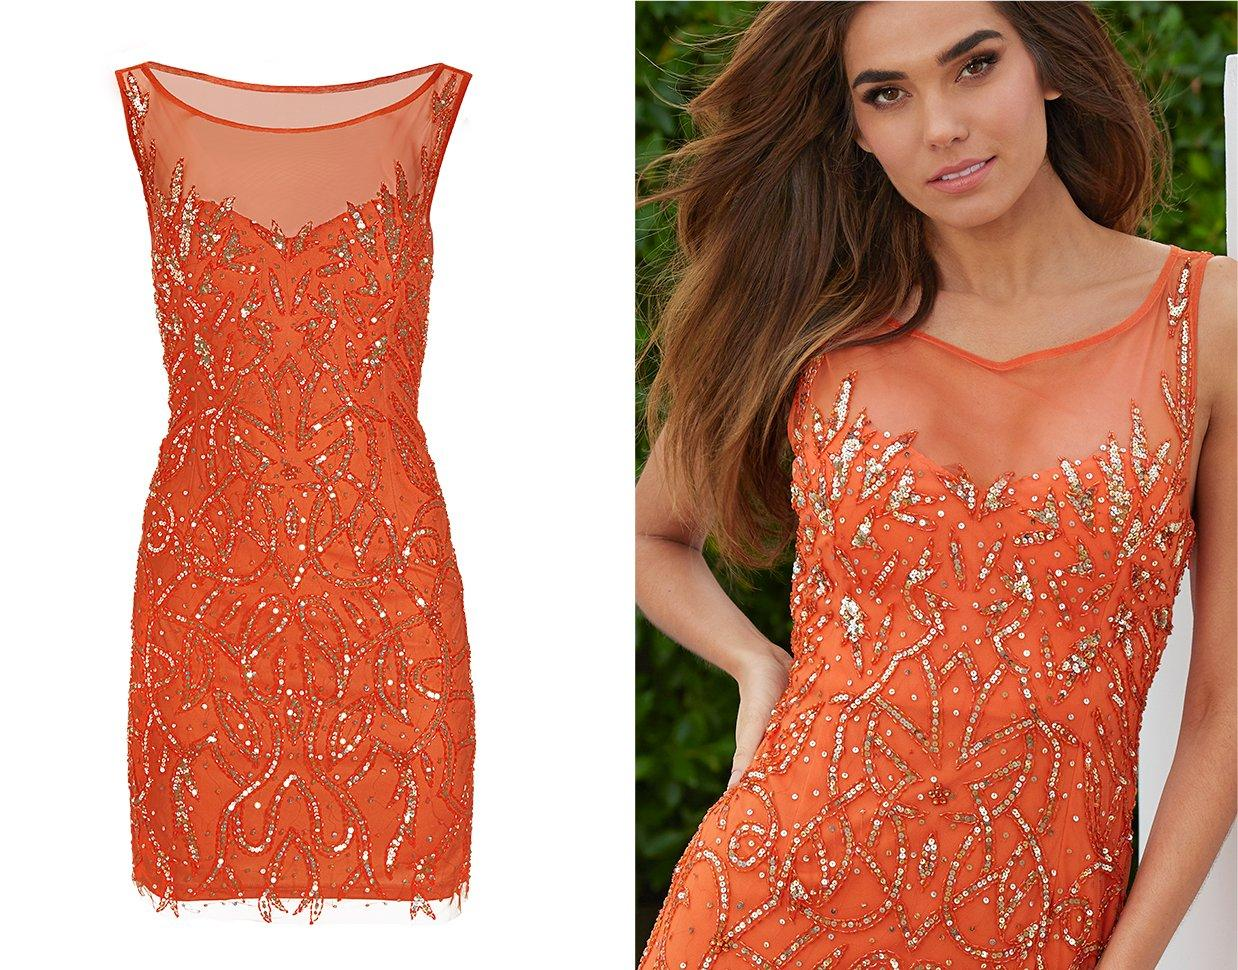 model wearing an orange illusion sleeveless dress with gold sequin embellishments.